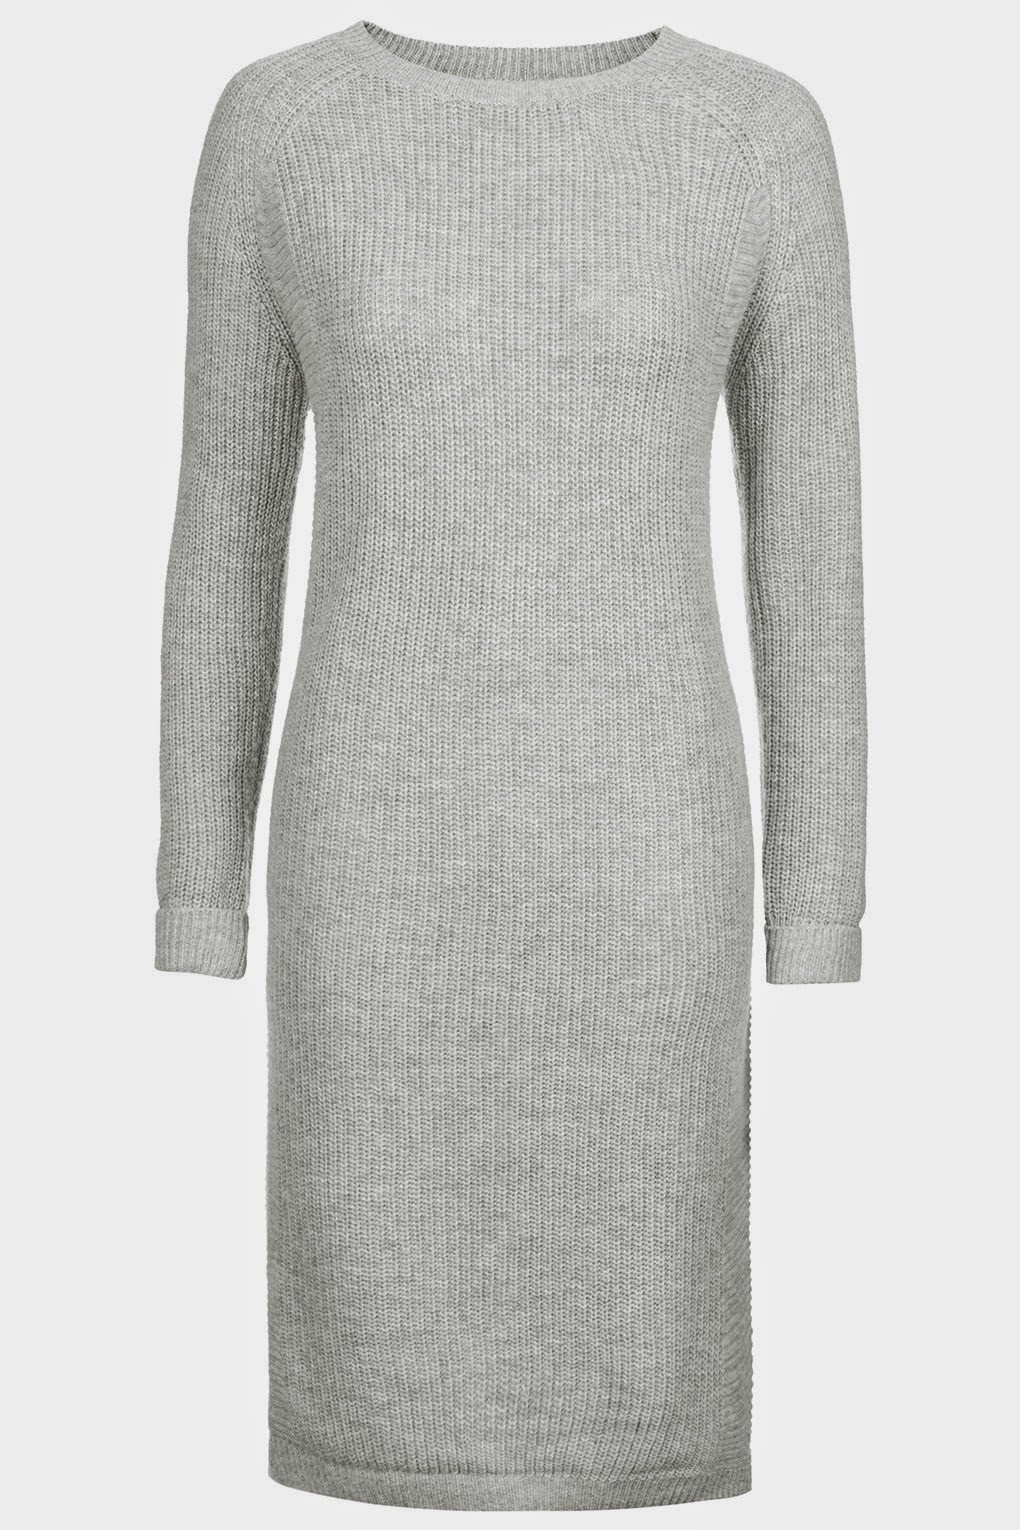 grey midi length wool dress